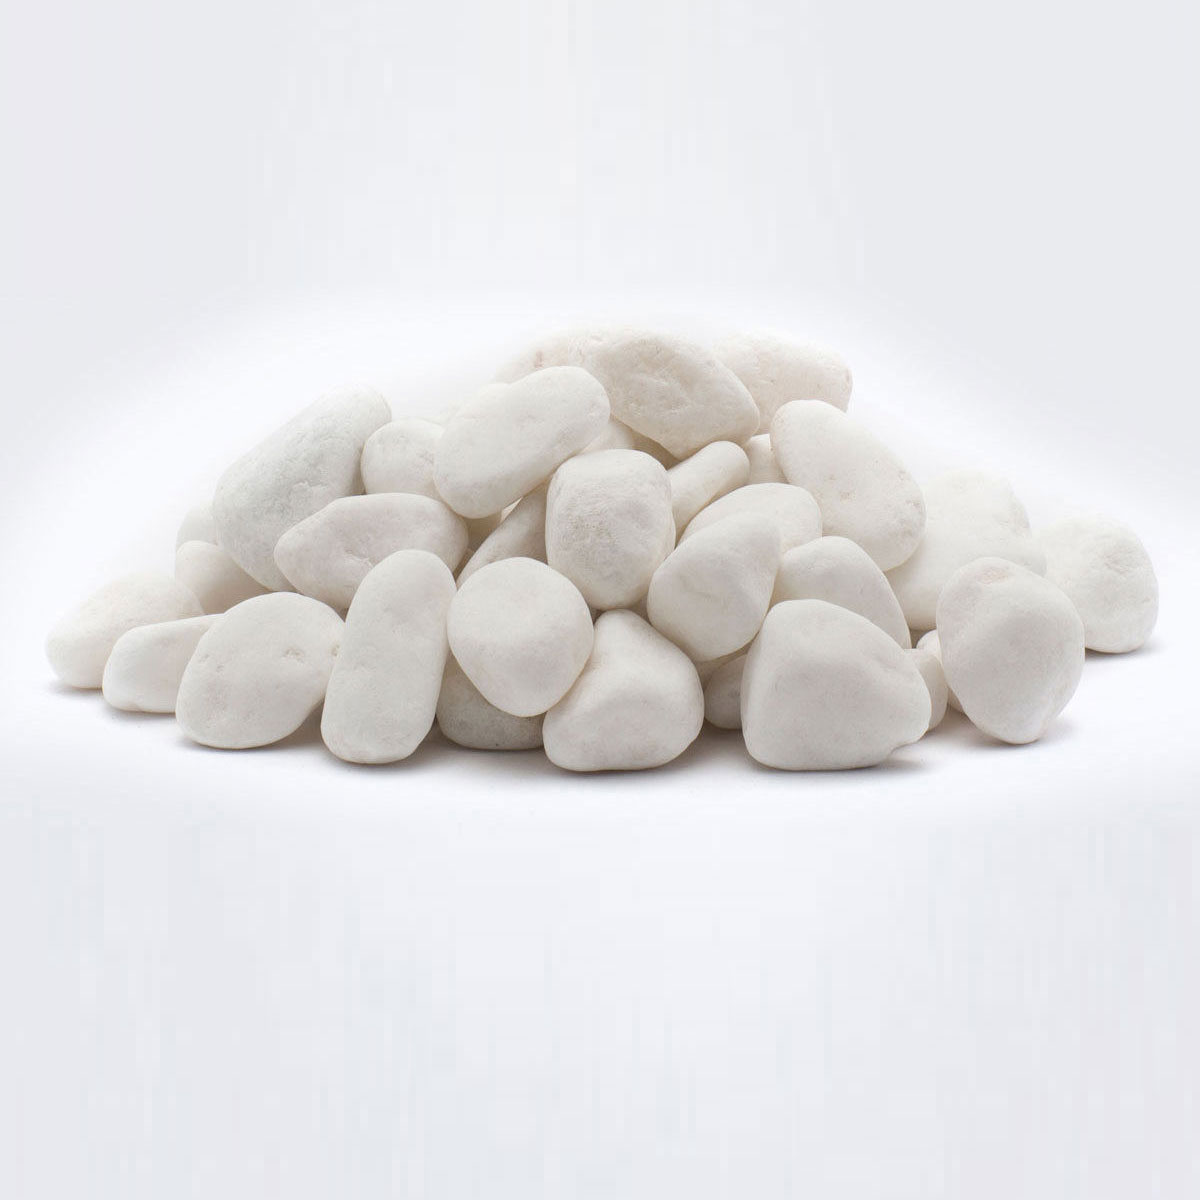 1kg Large White Natural Stones Vases Craft Pebbles